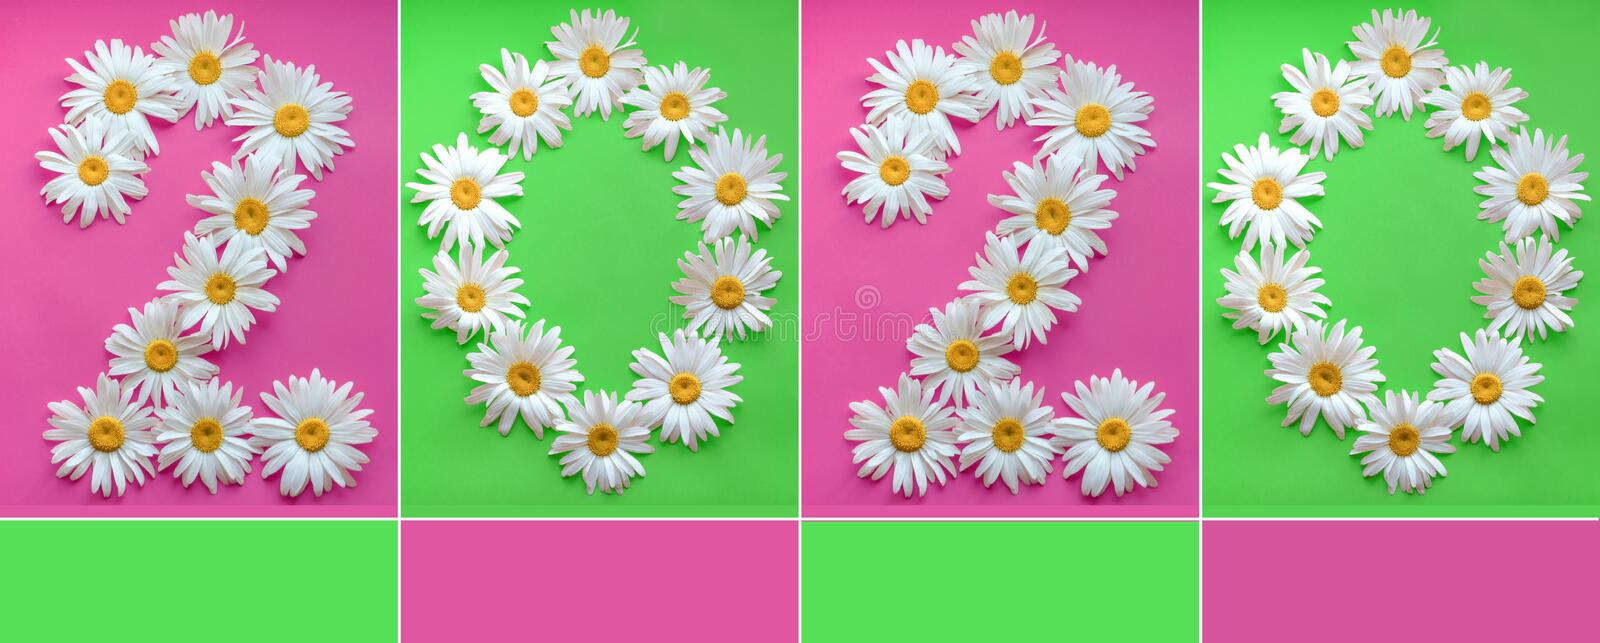 Inscription 2020 from fresh daisies on a colored background. 0, 2, arabic numeral. Happy New Year 2020. Large daisies create a stock photography